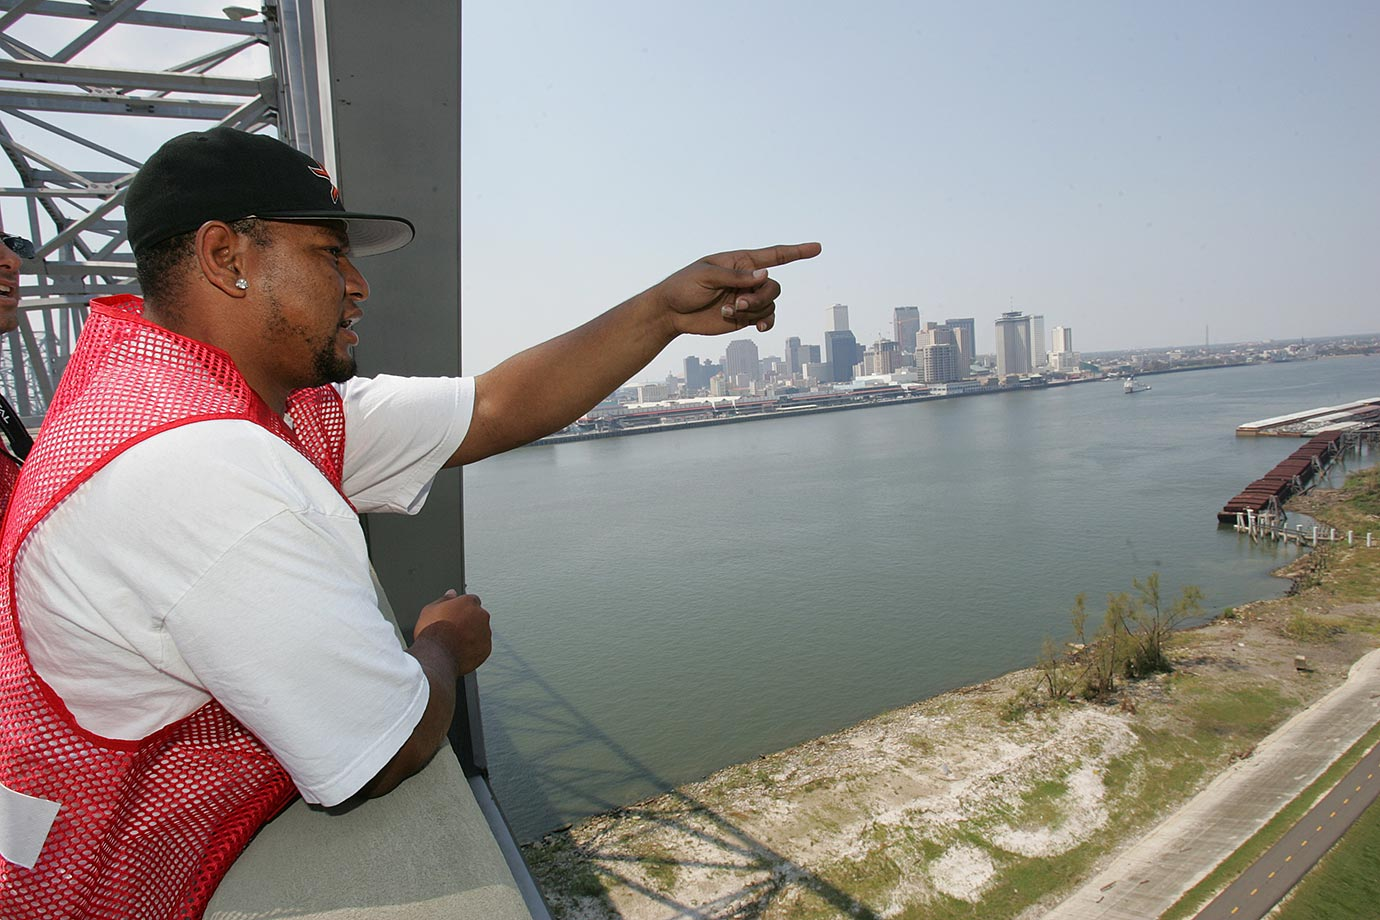 "Sept. 4, 2005: Saints running back Deuce McAllister surveys the damage in New Orleans after Hurricane Katrina. ""I had an opportunity to go back that Saturday and do stuff for the Red Cross,"" said McAllister. ""Even to think we considered these people refugees. They were not refugees; they were people who lost their homes. When someone loses their home in a fire we don't use that term. These people were American citizens who just lost their homes. To think they could not get help. To think we were responding in the manner we were was really mind-boggling."""